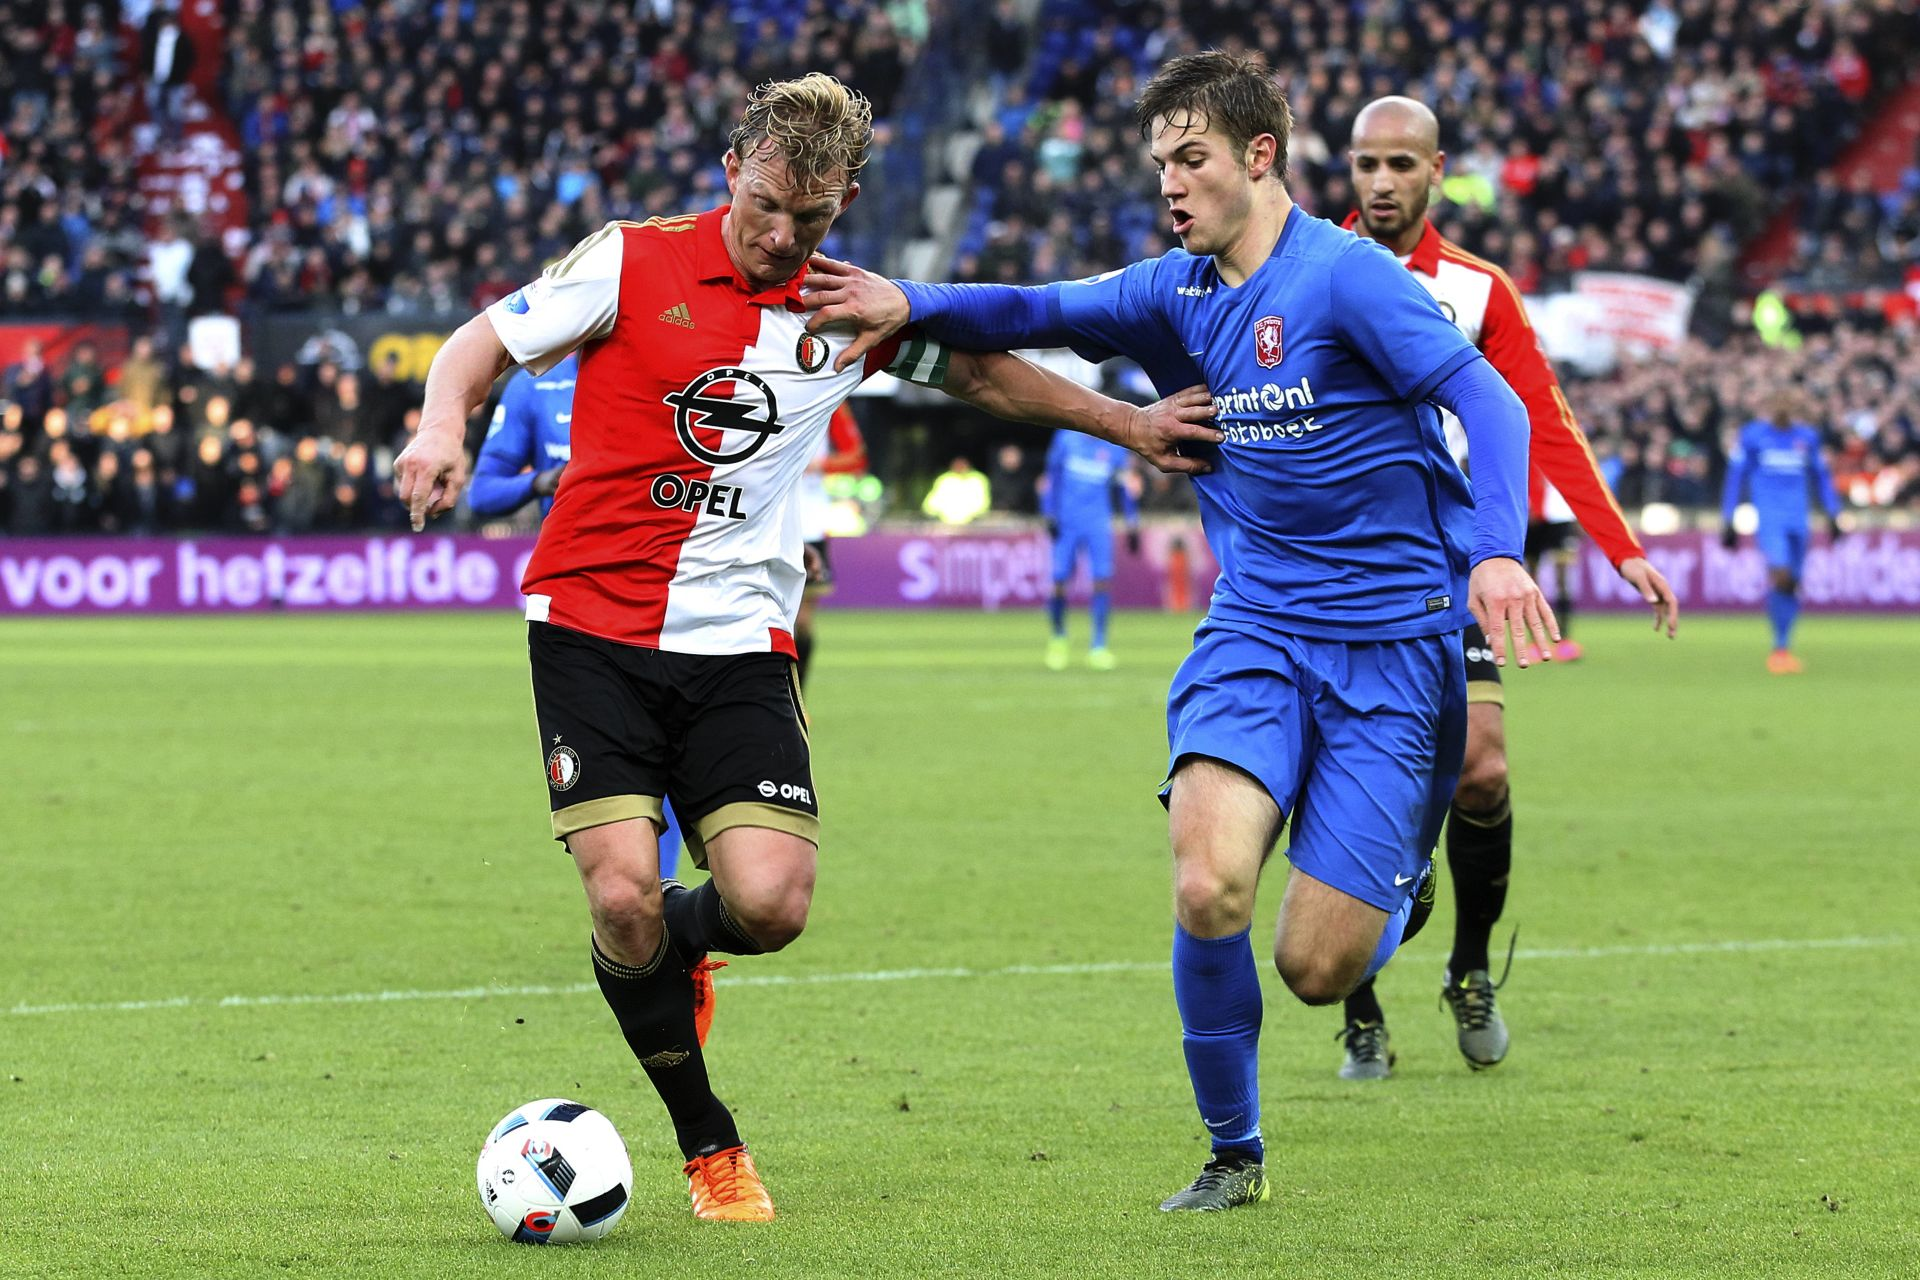 Onderwerp/Subject: Feyenoord - FC Twente - Eredivisie Reklame: Club/Team/Country: Seizoen/Season: 2015/2016 FOTO/PHOTO: Dirk KUIJT ( Dirk KUYT ) (L) of Feyenoord in duel with Joachim ANDERSEN (R) of FC Twente. (Photo by PICS UNITED) LIGA HOLENDERSKA PILKA NOZNA SEZON 2015/2016 FOT.PIXATHLON/NEWSPIX.PL POLAND ONLY!!! --- Newspix.pl *** Local Caption *** www.newspix.pl mail us: info@newspix.pl call us: 0048 022 23 22 222 --- Polish Picture Agency by Ringier Axel Springer Poland